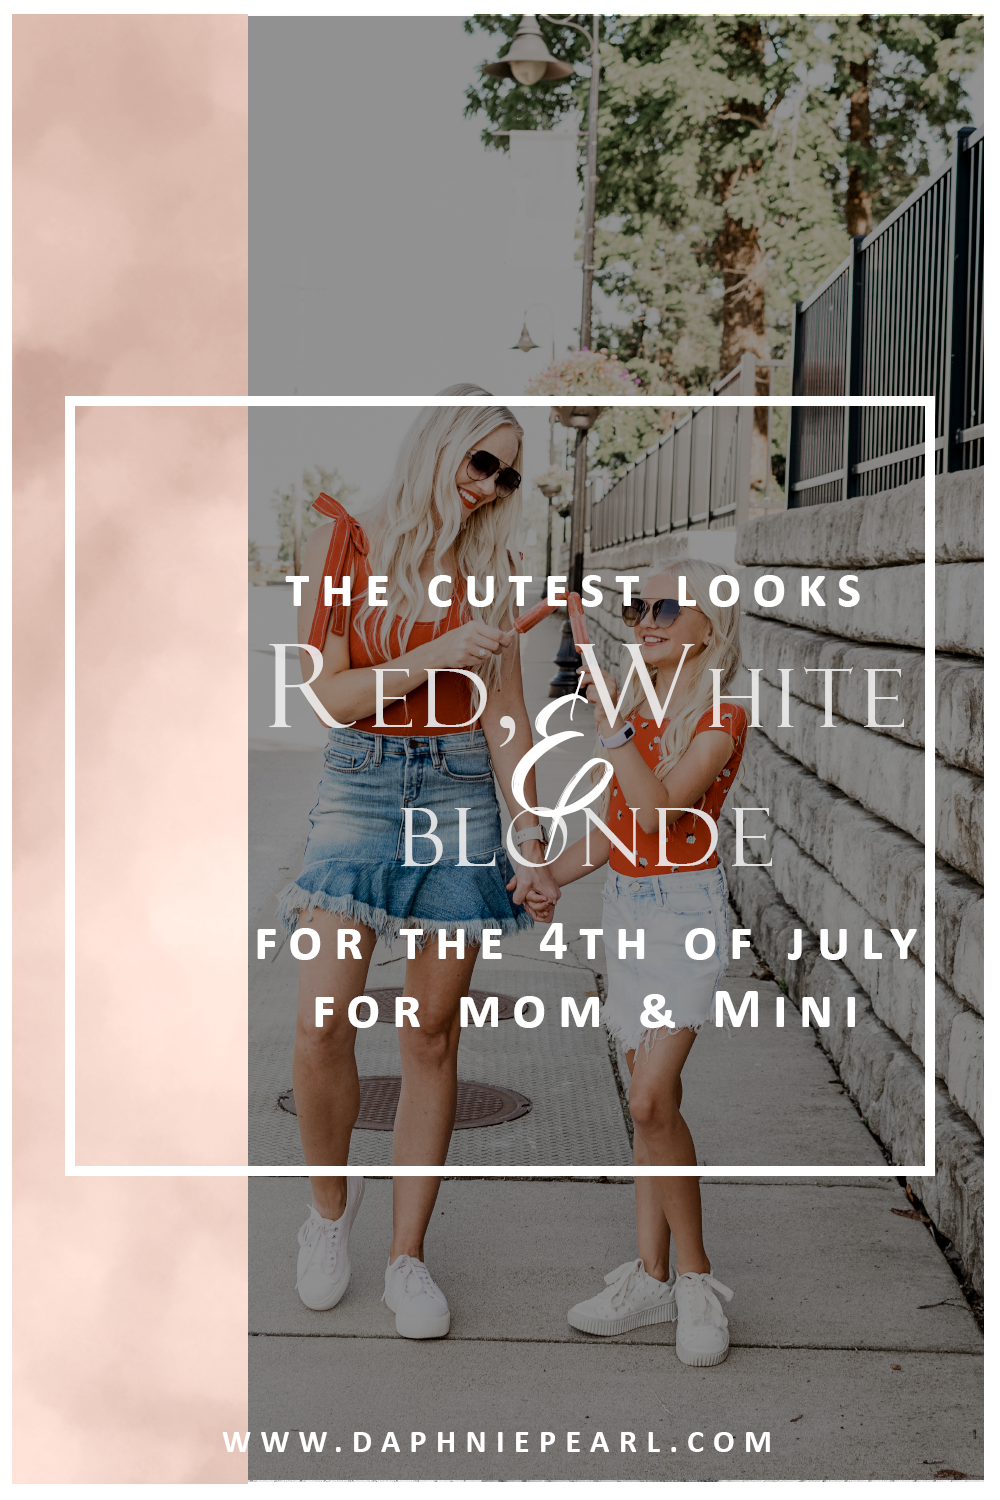 Red White and BLONDE! Cute Casual Looks for the 4th for both Mom and Mini!  Mom Style Little Girl StyleCute casual looks for the 4th of July for both mom and daughter! Outside BBQ Mom Life Mini Me Mommy and Me Twinning Matching 4th of July Independence Day Shorts Skirt Denim Cut off Skirt Red White Blue Americana American Flag Photography Lifestyle